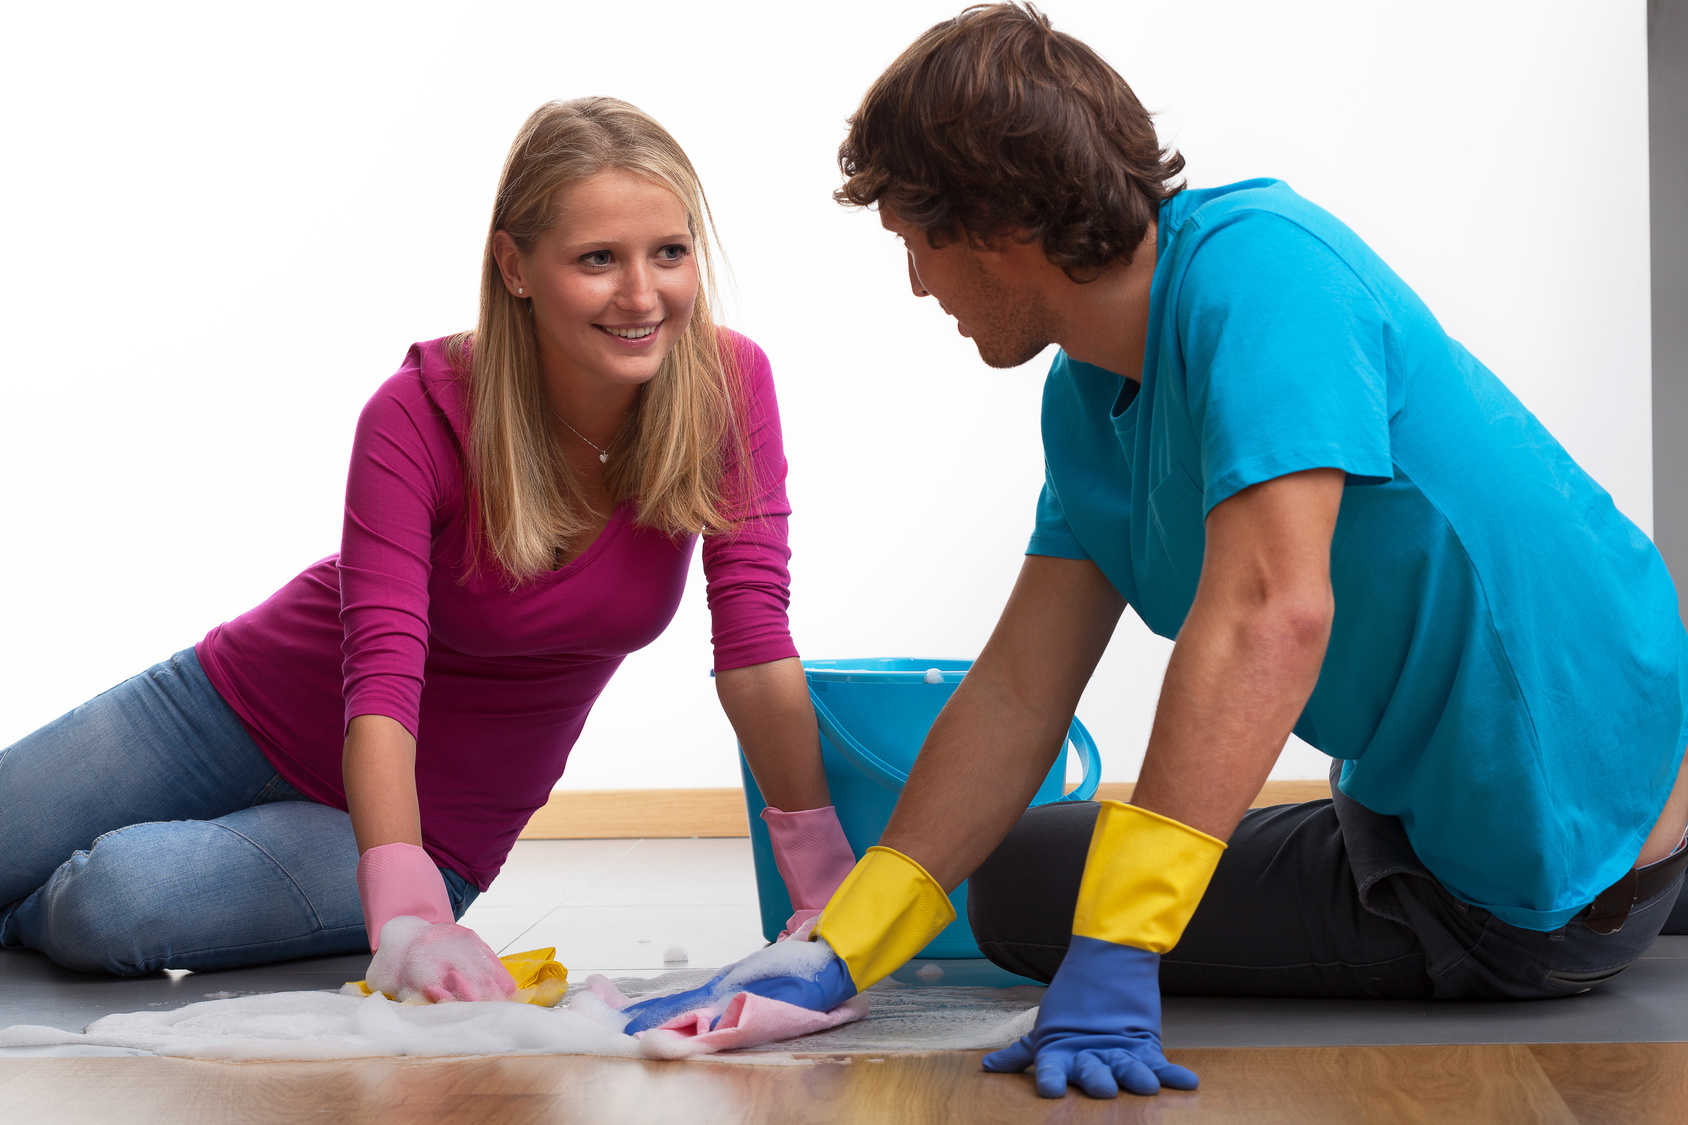 Marriage enjoy cleaning house together